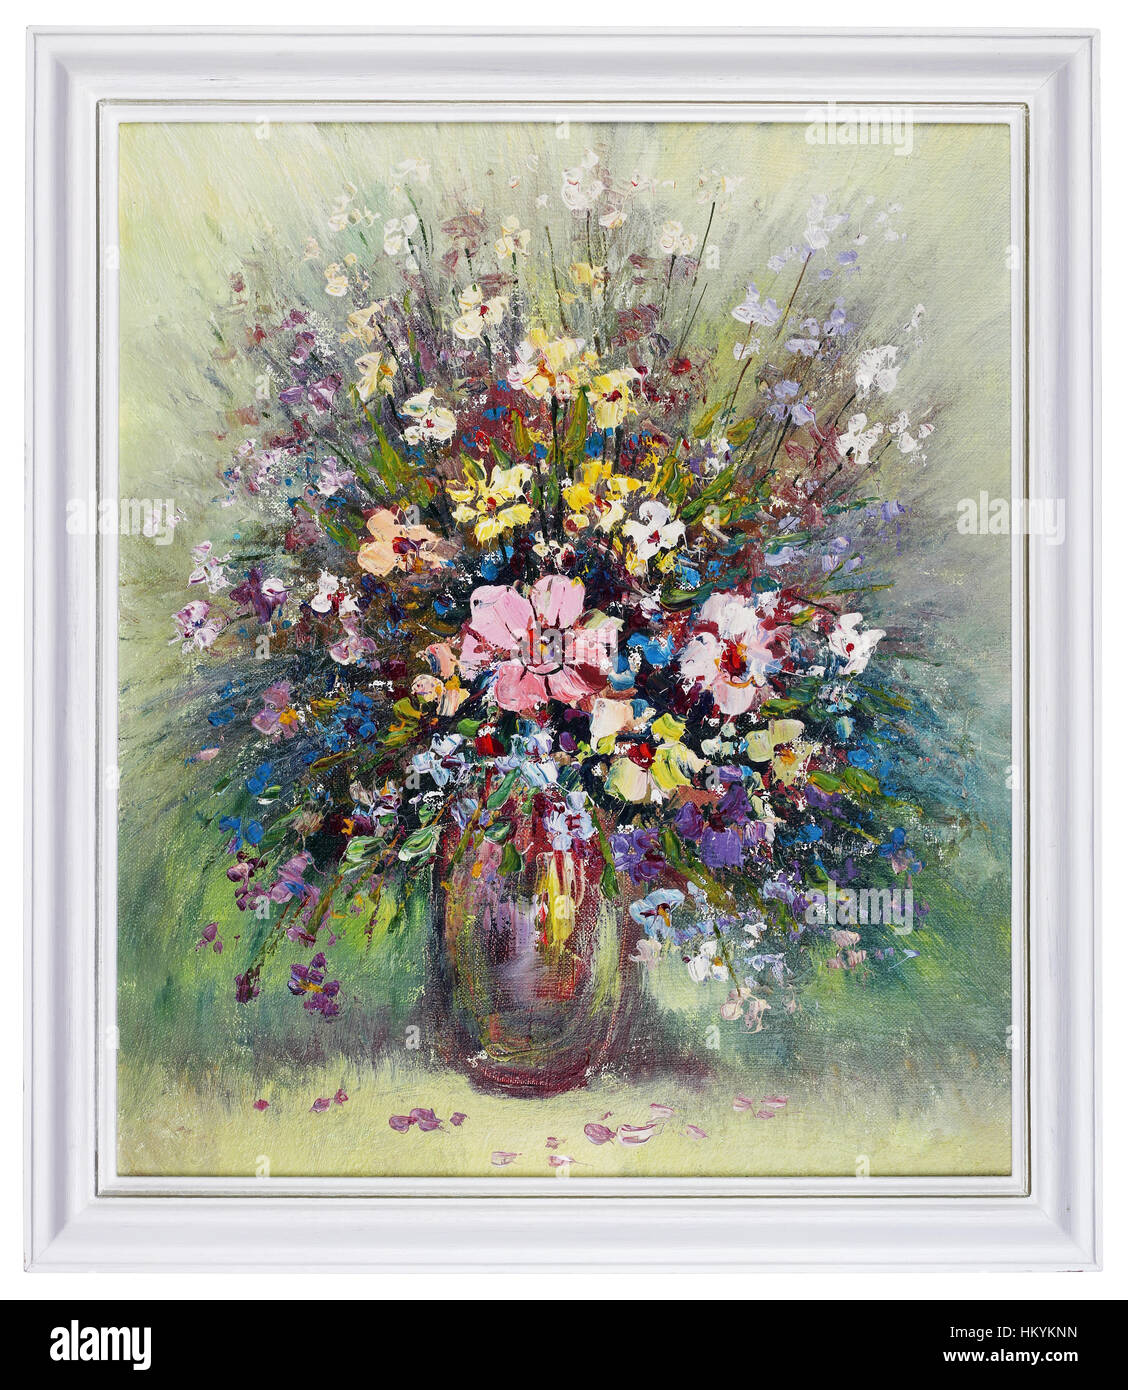 Oil painting beautiful flowers artwork stock photos oil painting wild meadow flowers bouquet in ceramic vase handmade oil art painting in white wooden frame izmirmasajfo